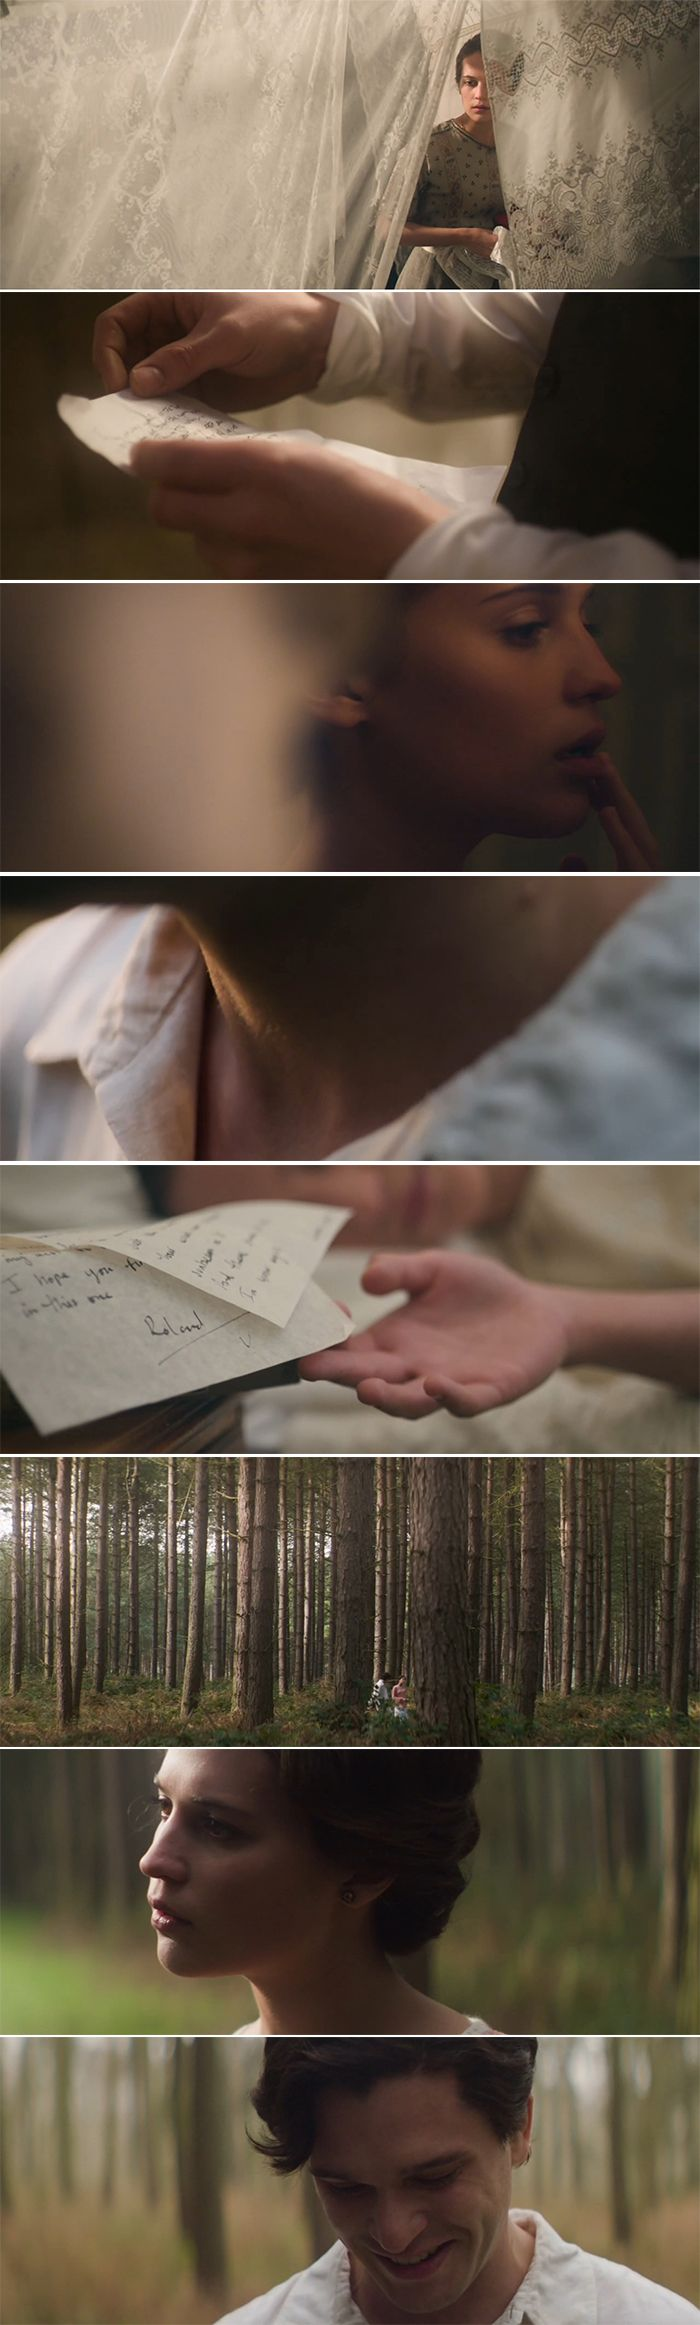 Dreamy cinematography from Testament of Youth (I love the scene in amongst the washing lines!)